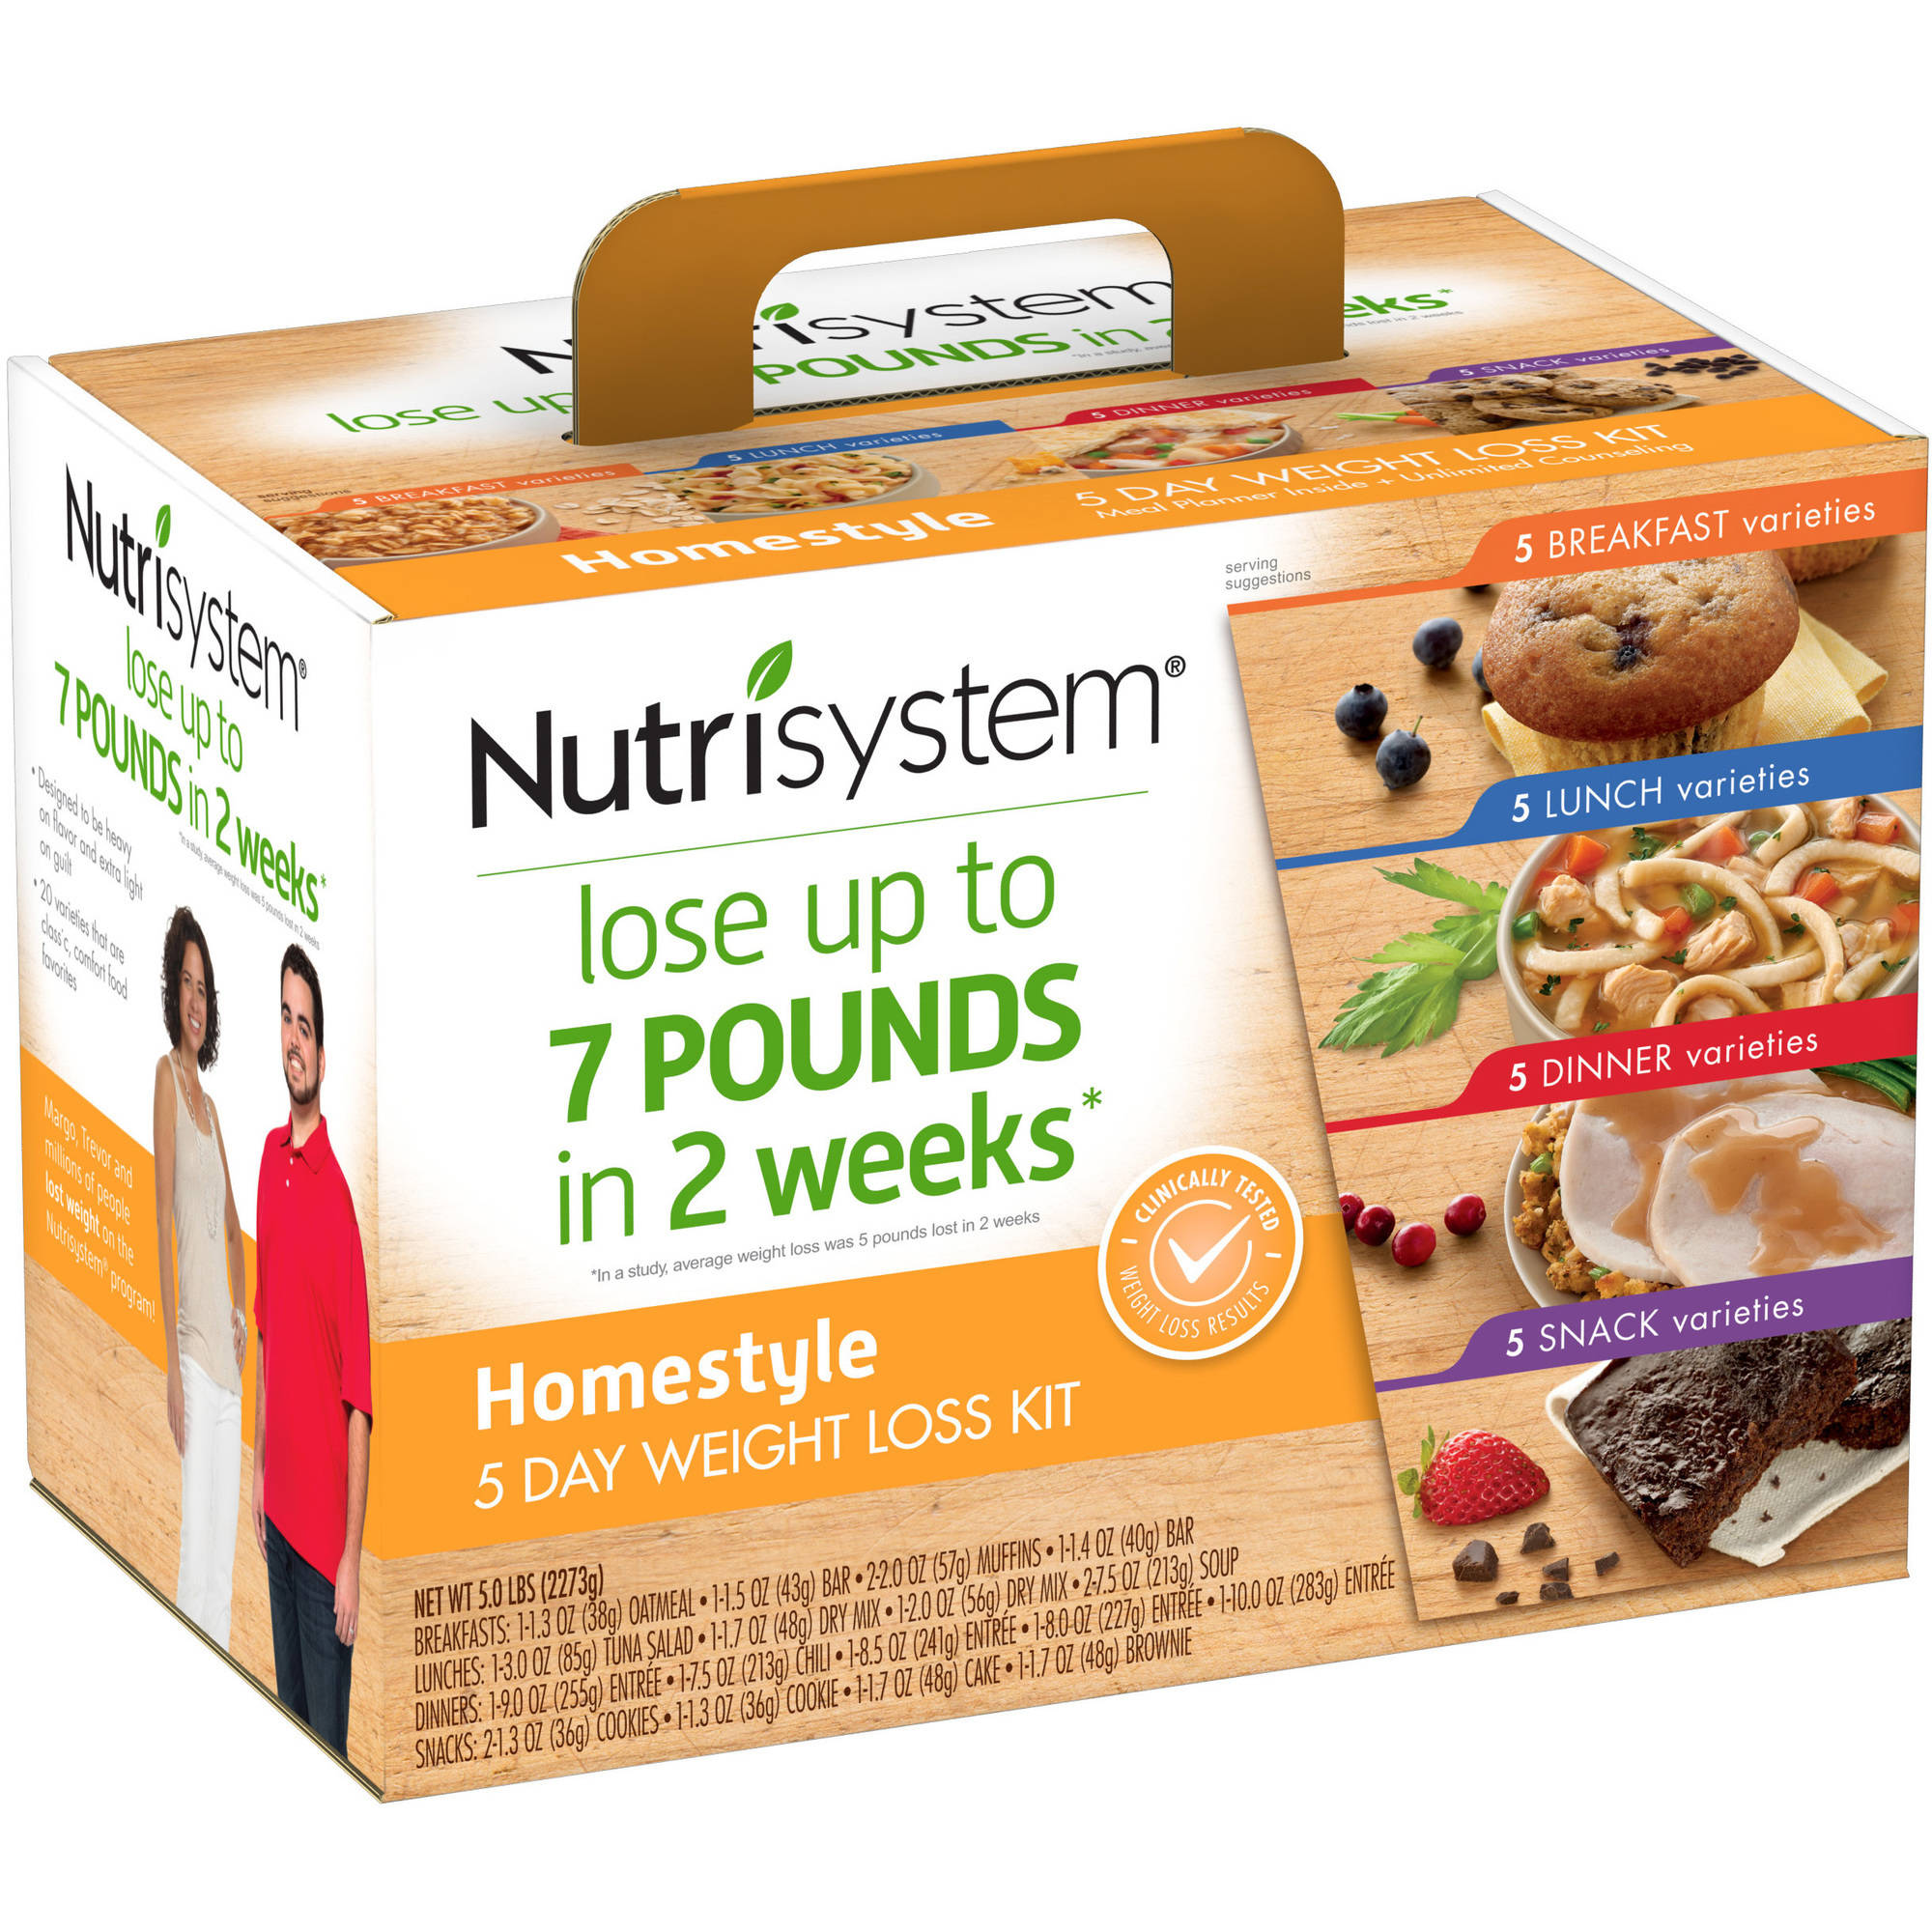 Nutrisystem 5 Day Homestyle Weight Loss Kit